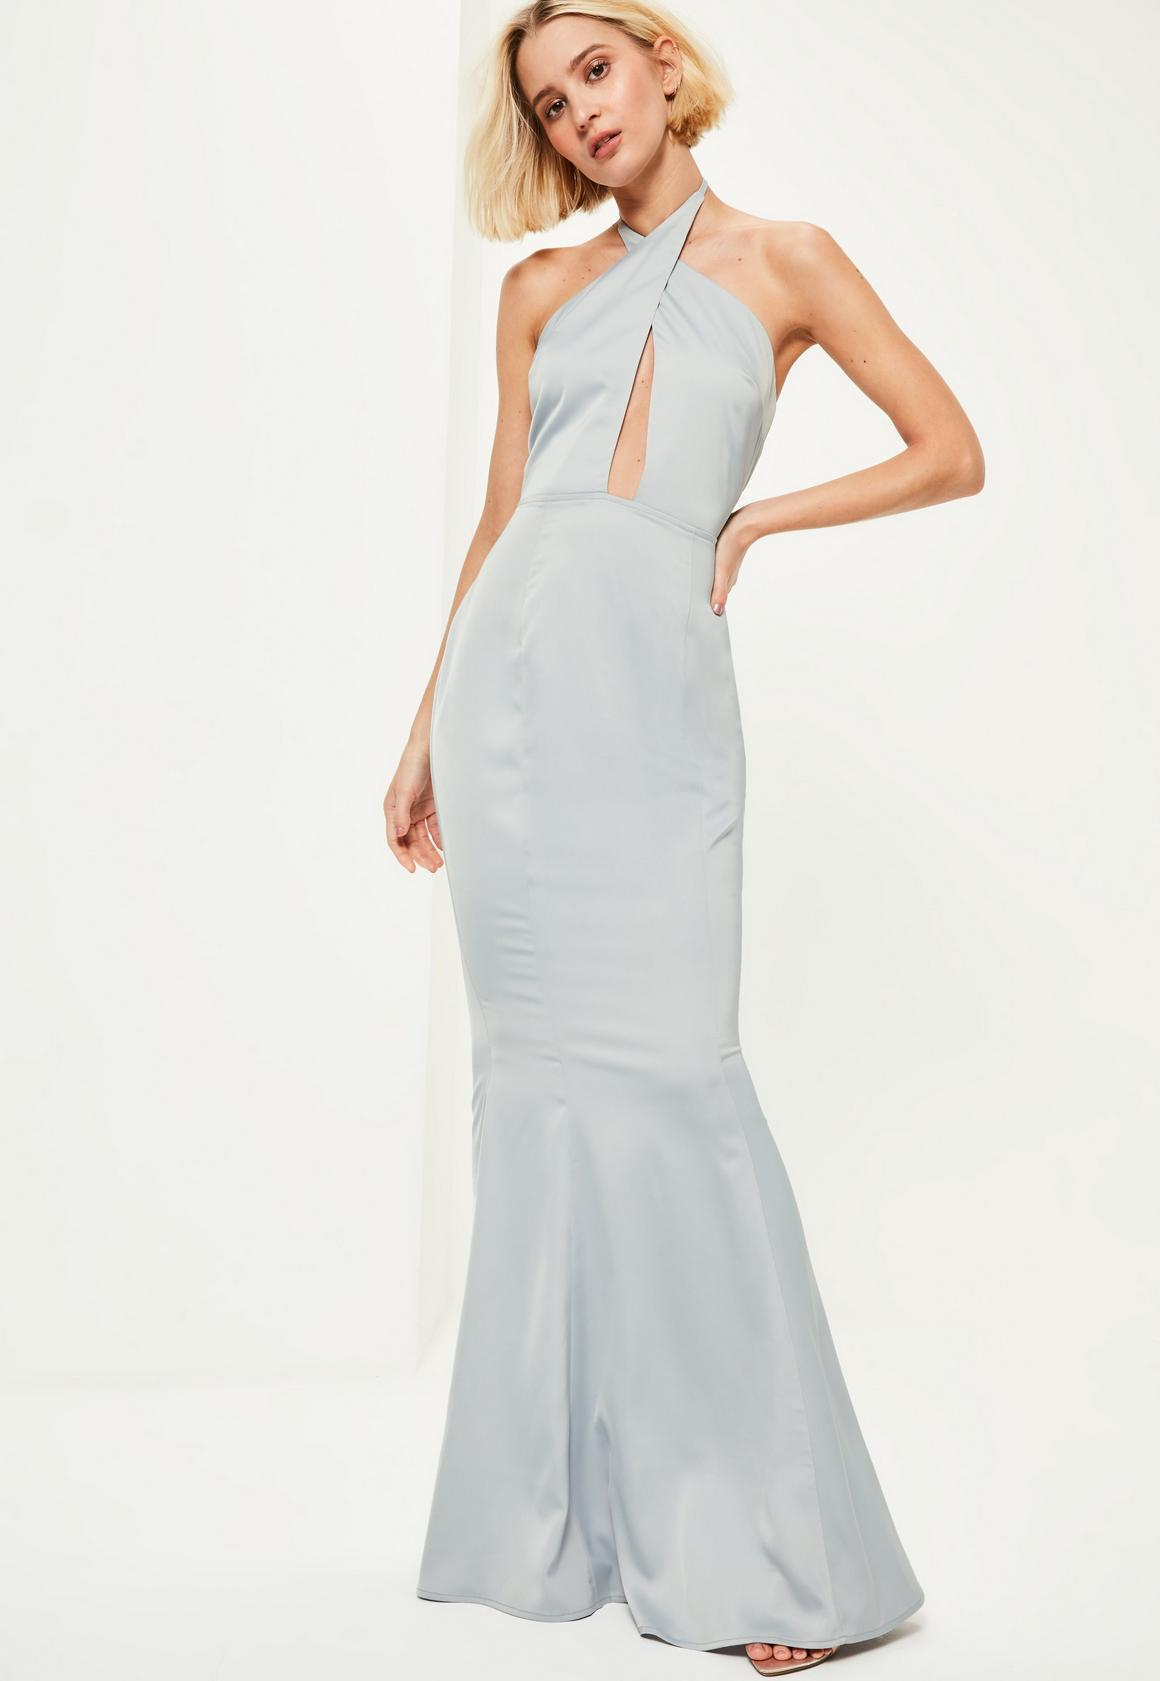 And ice silver bridesmaid dress if it was navy blue and ice silver - Blue Plunge Halterneck Fishtail Maxi Dress Blue Plunge Halterneck Fishtail Maxi Dress